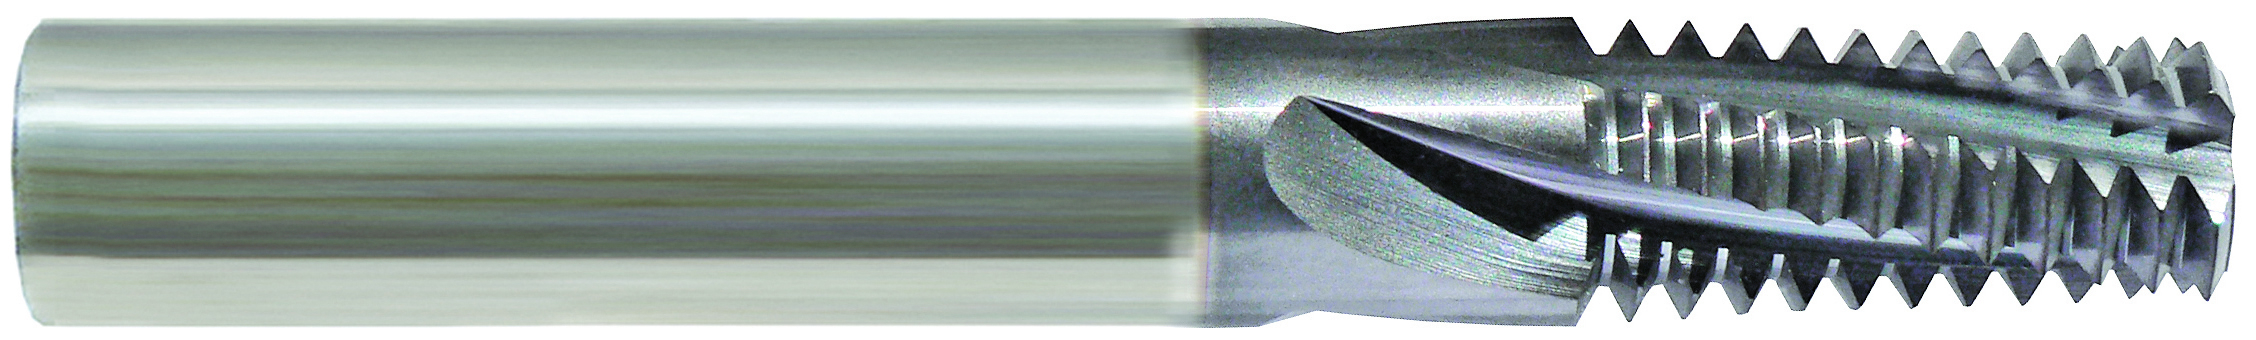 M3-0.50 MC SOLID CARBIDE THREAD MILL